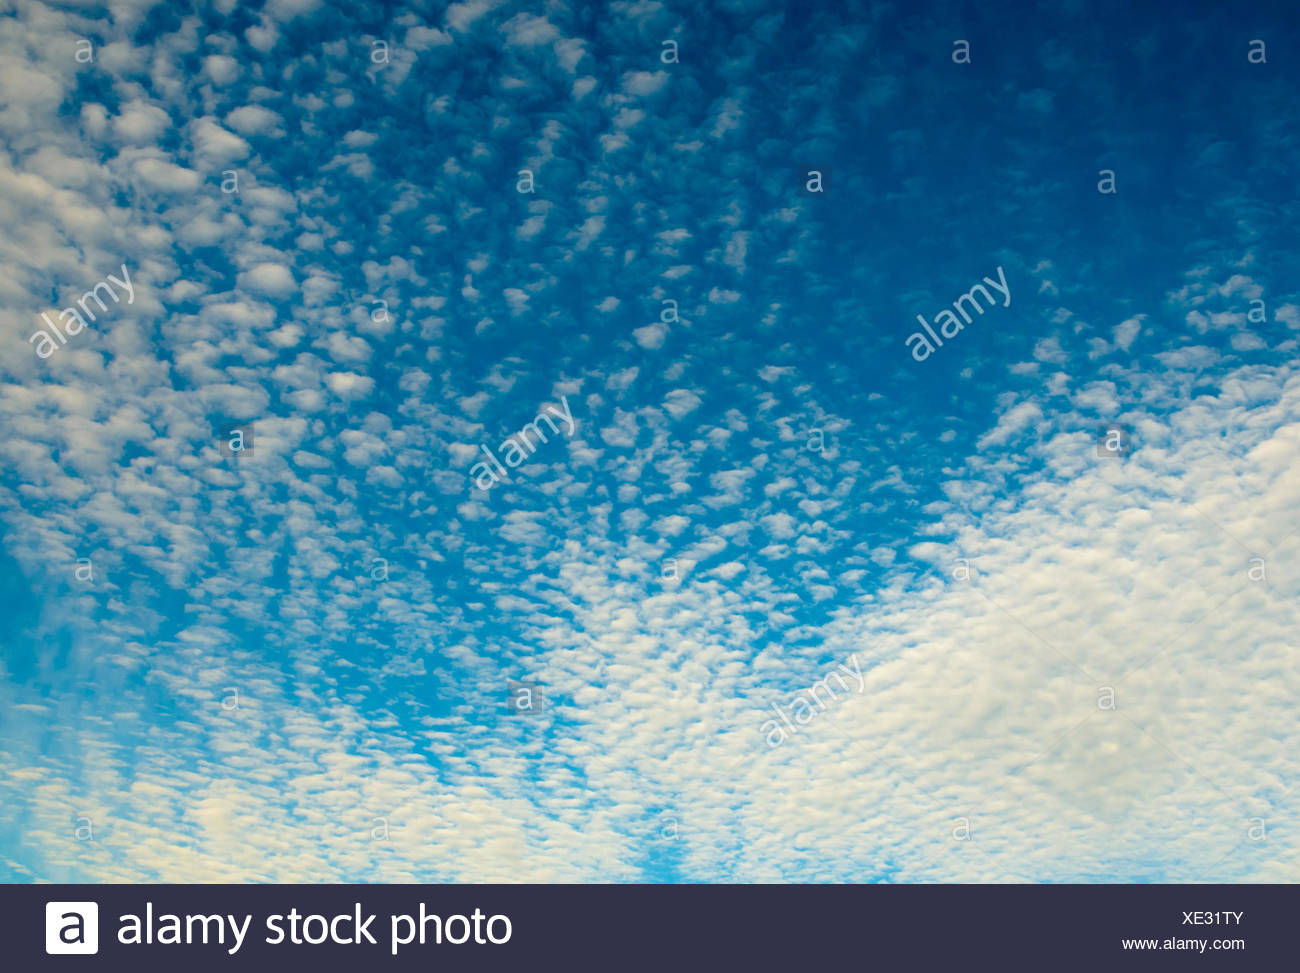 Cloudy sky background - Stock Image